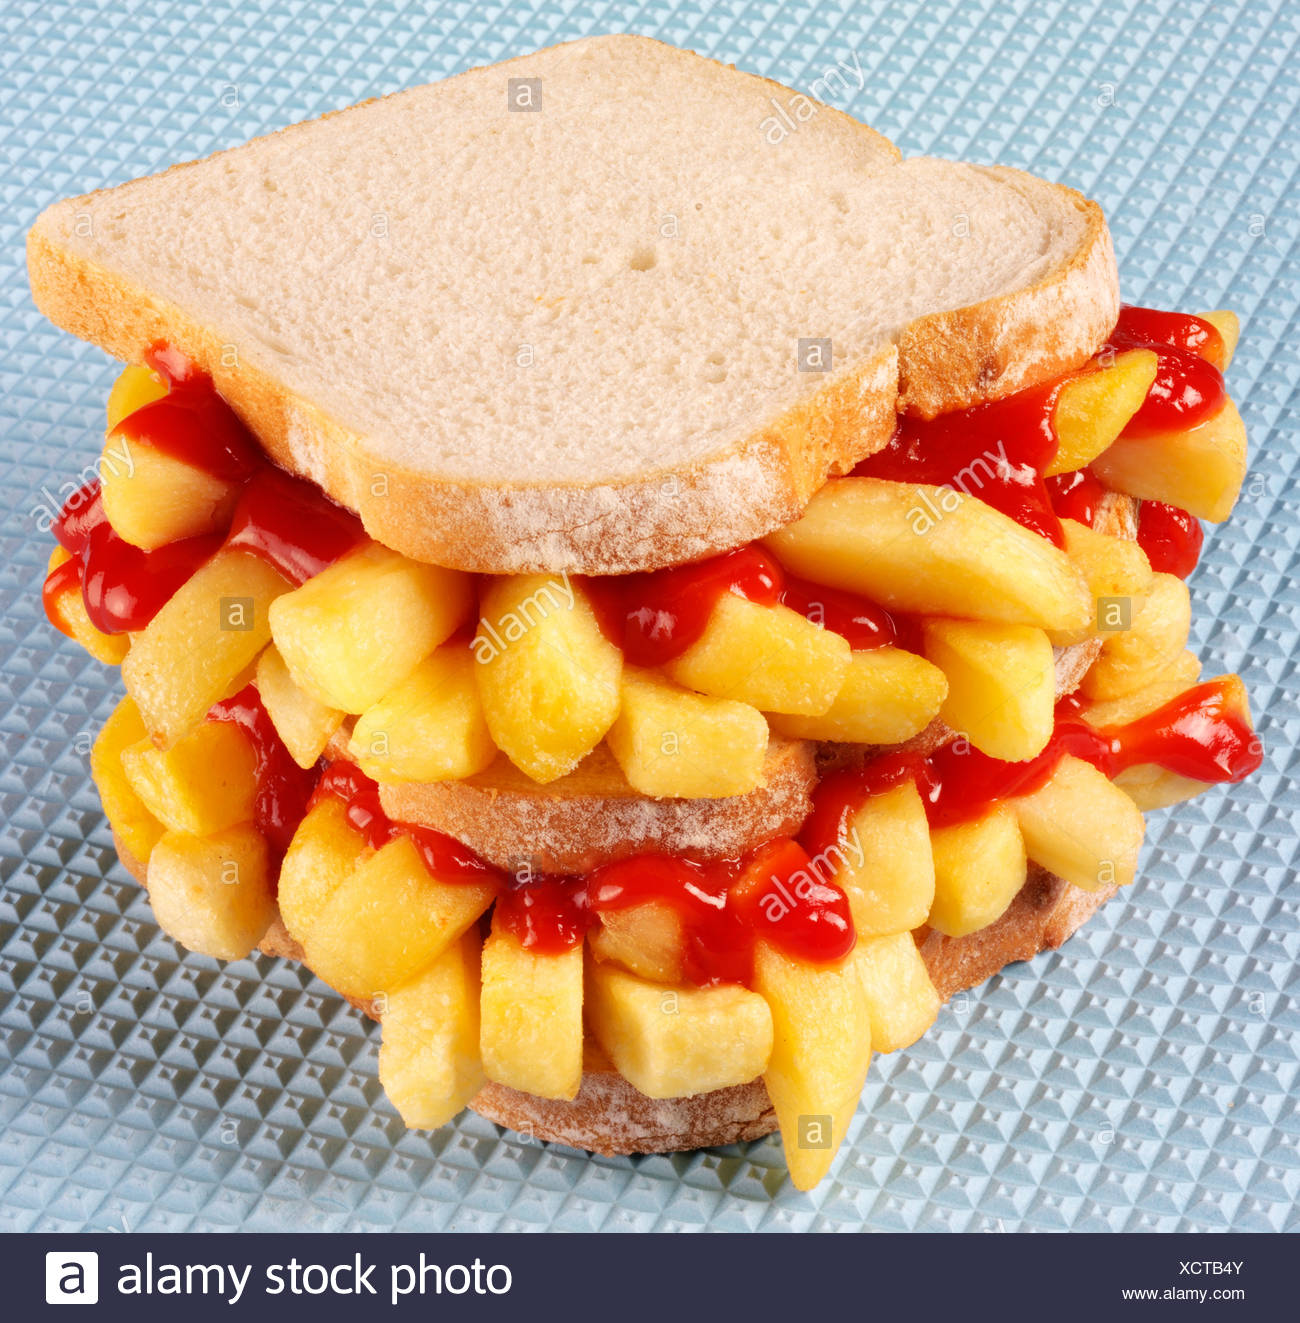 CHIP BUTTY SANDWICH WITH KETCHUP - Stock Image